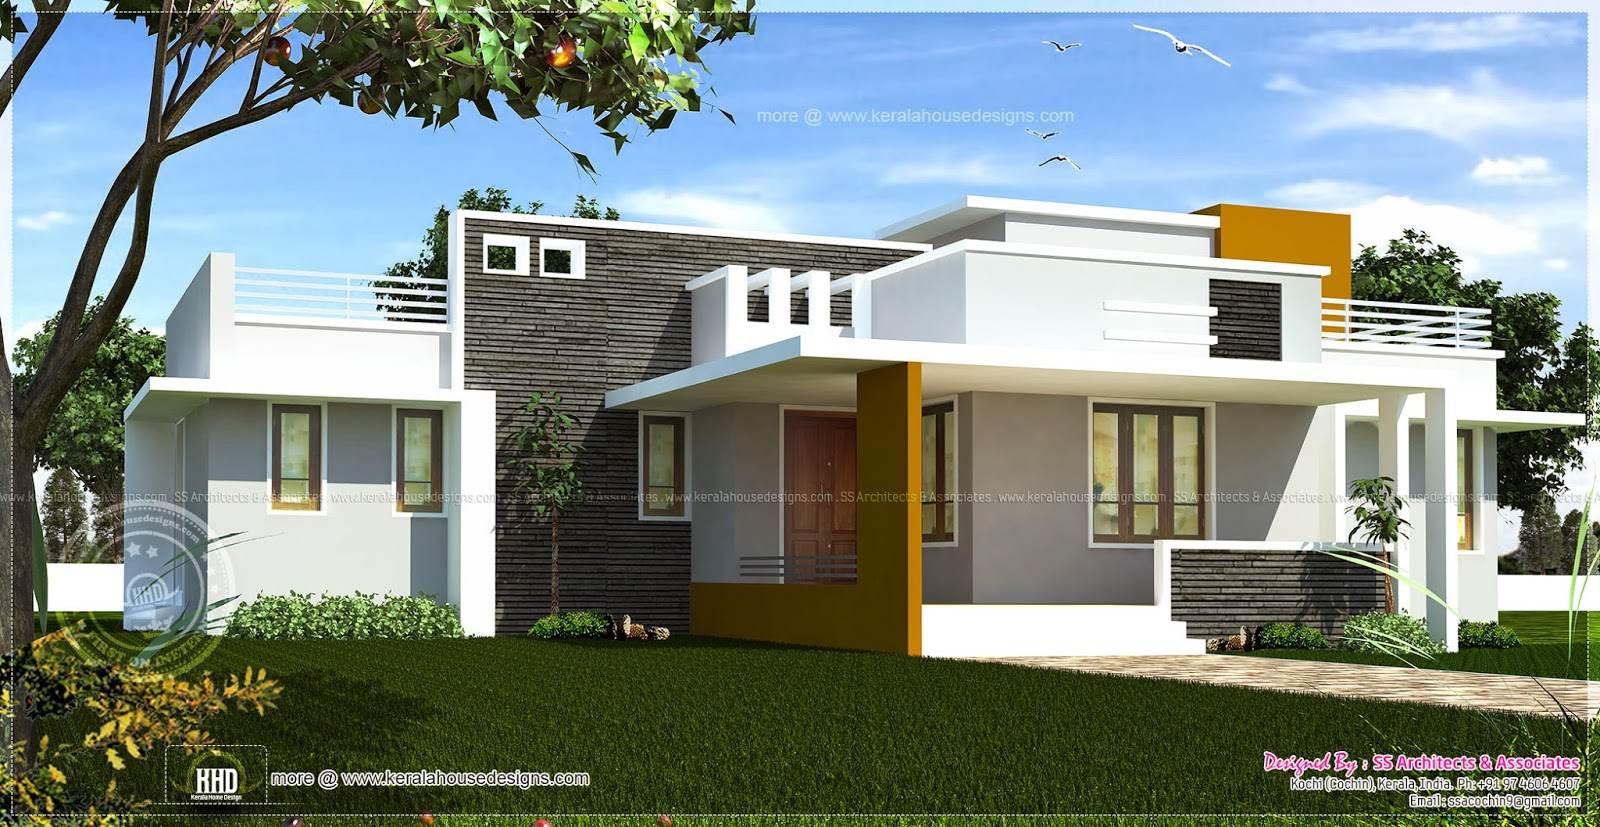 Single floor contemporary house design kerala home for Modern house design single floor